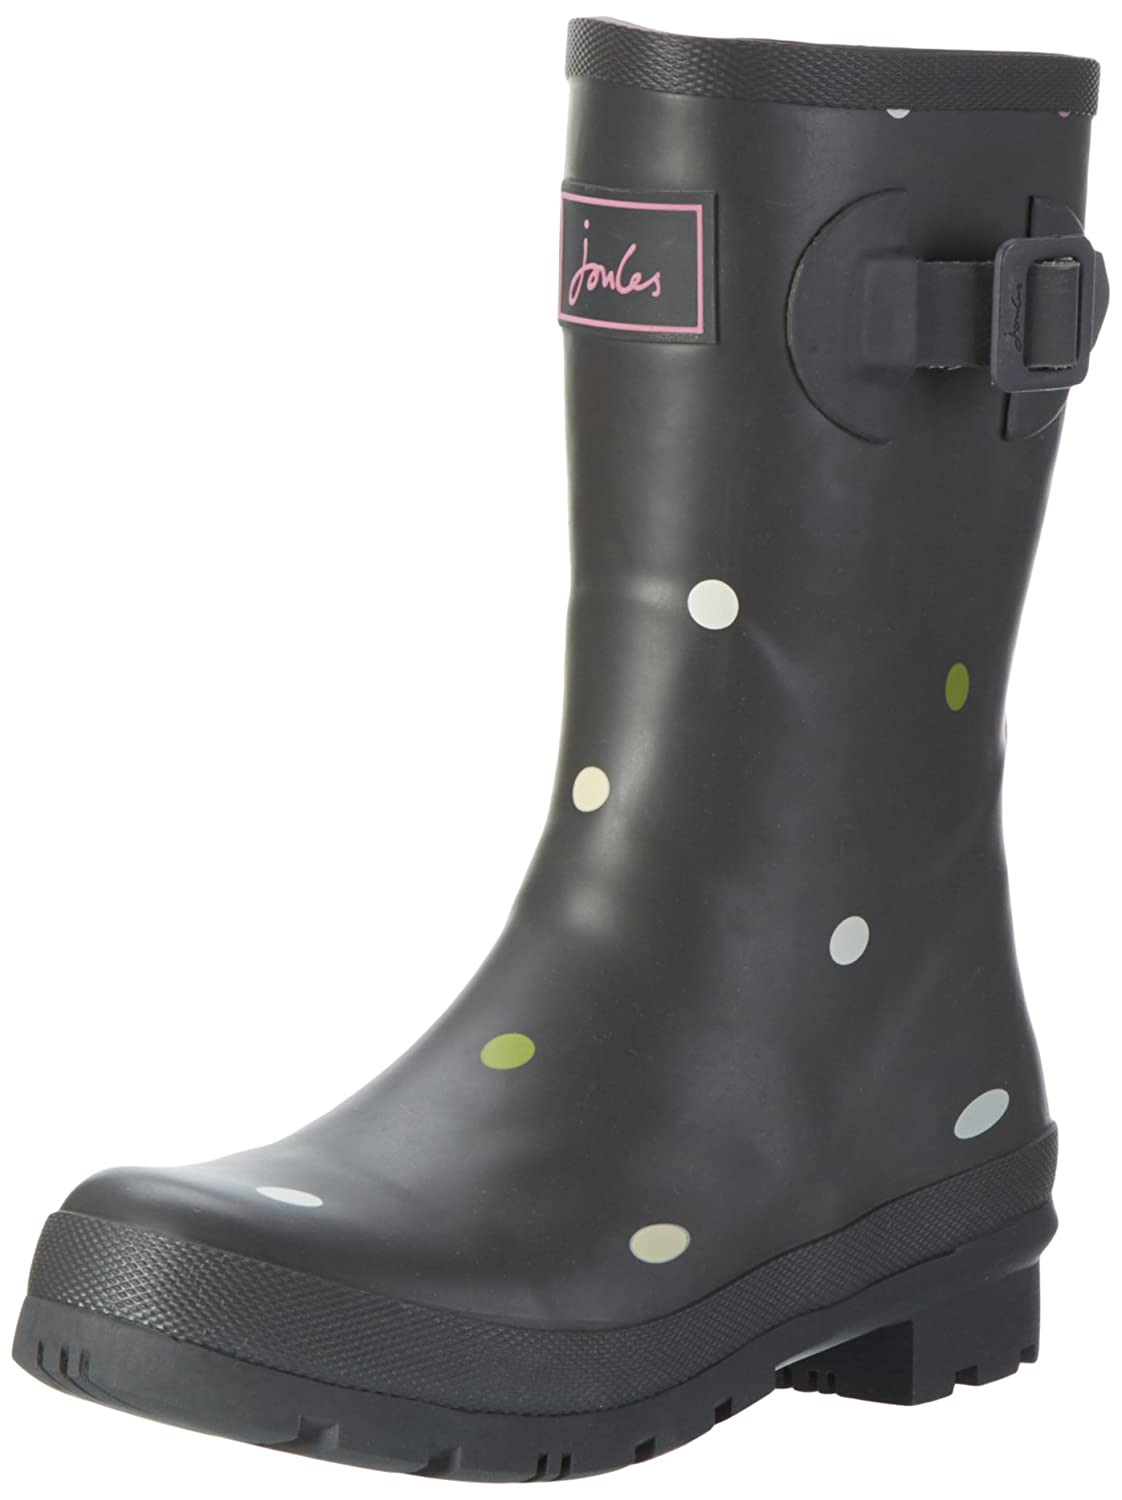 Joules Women's Molly Welly Rain Boot B01M21OQYD 6 B(M) US|Grey Kiki Spot